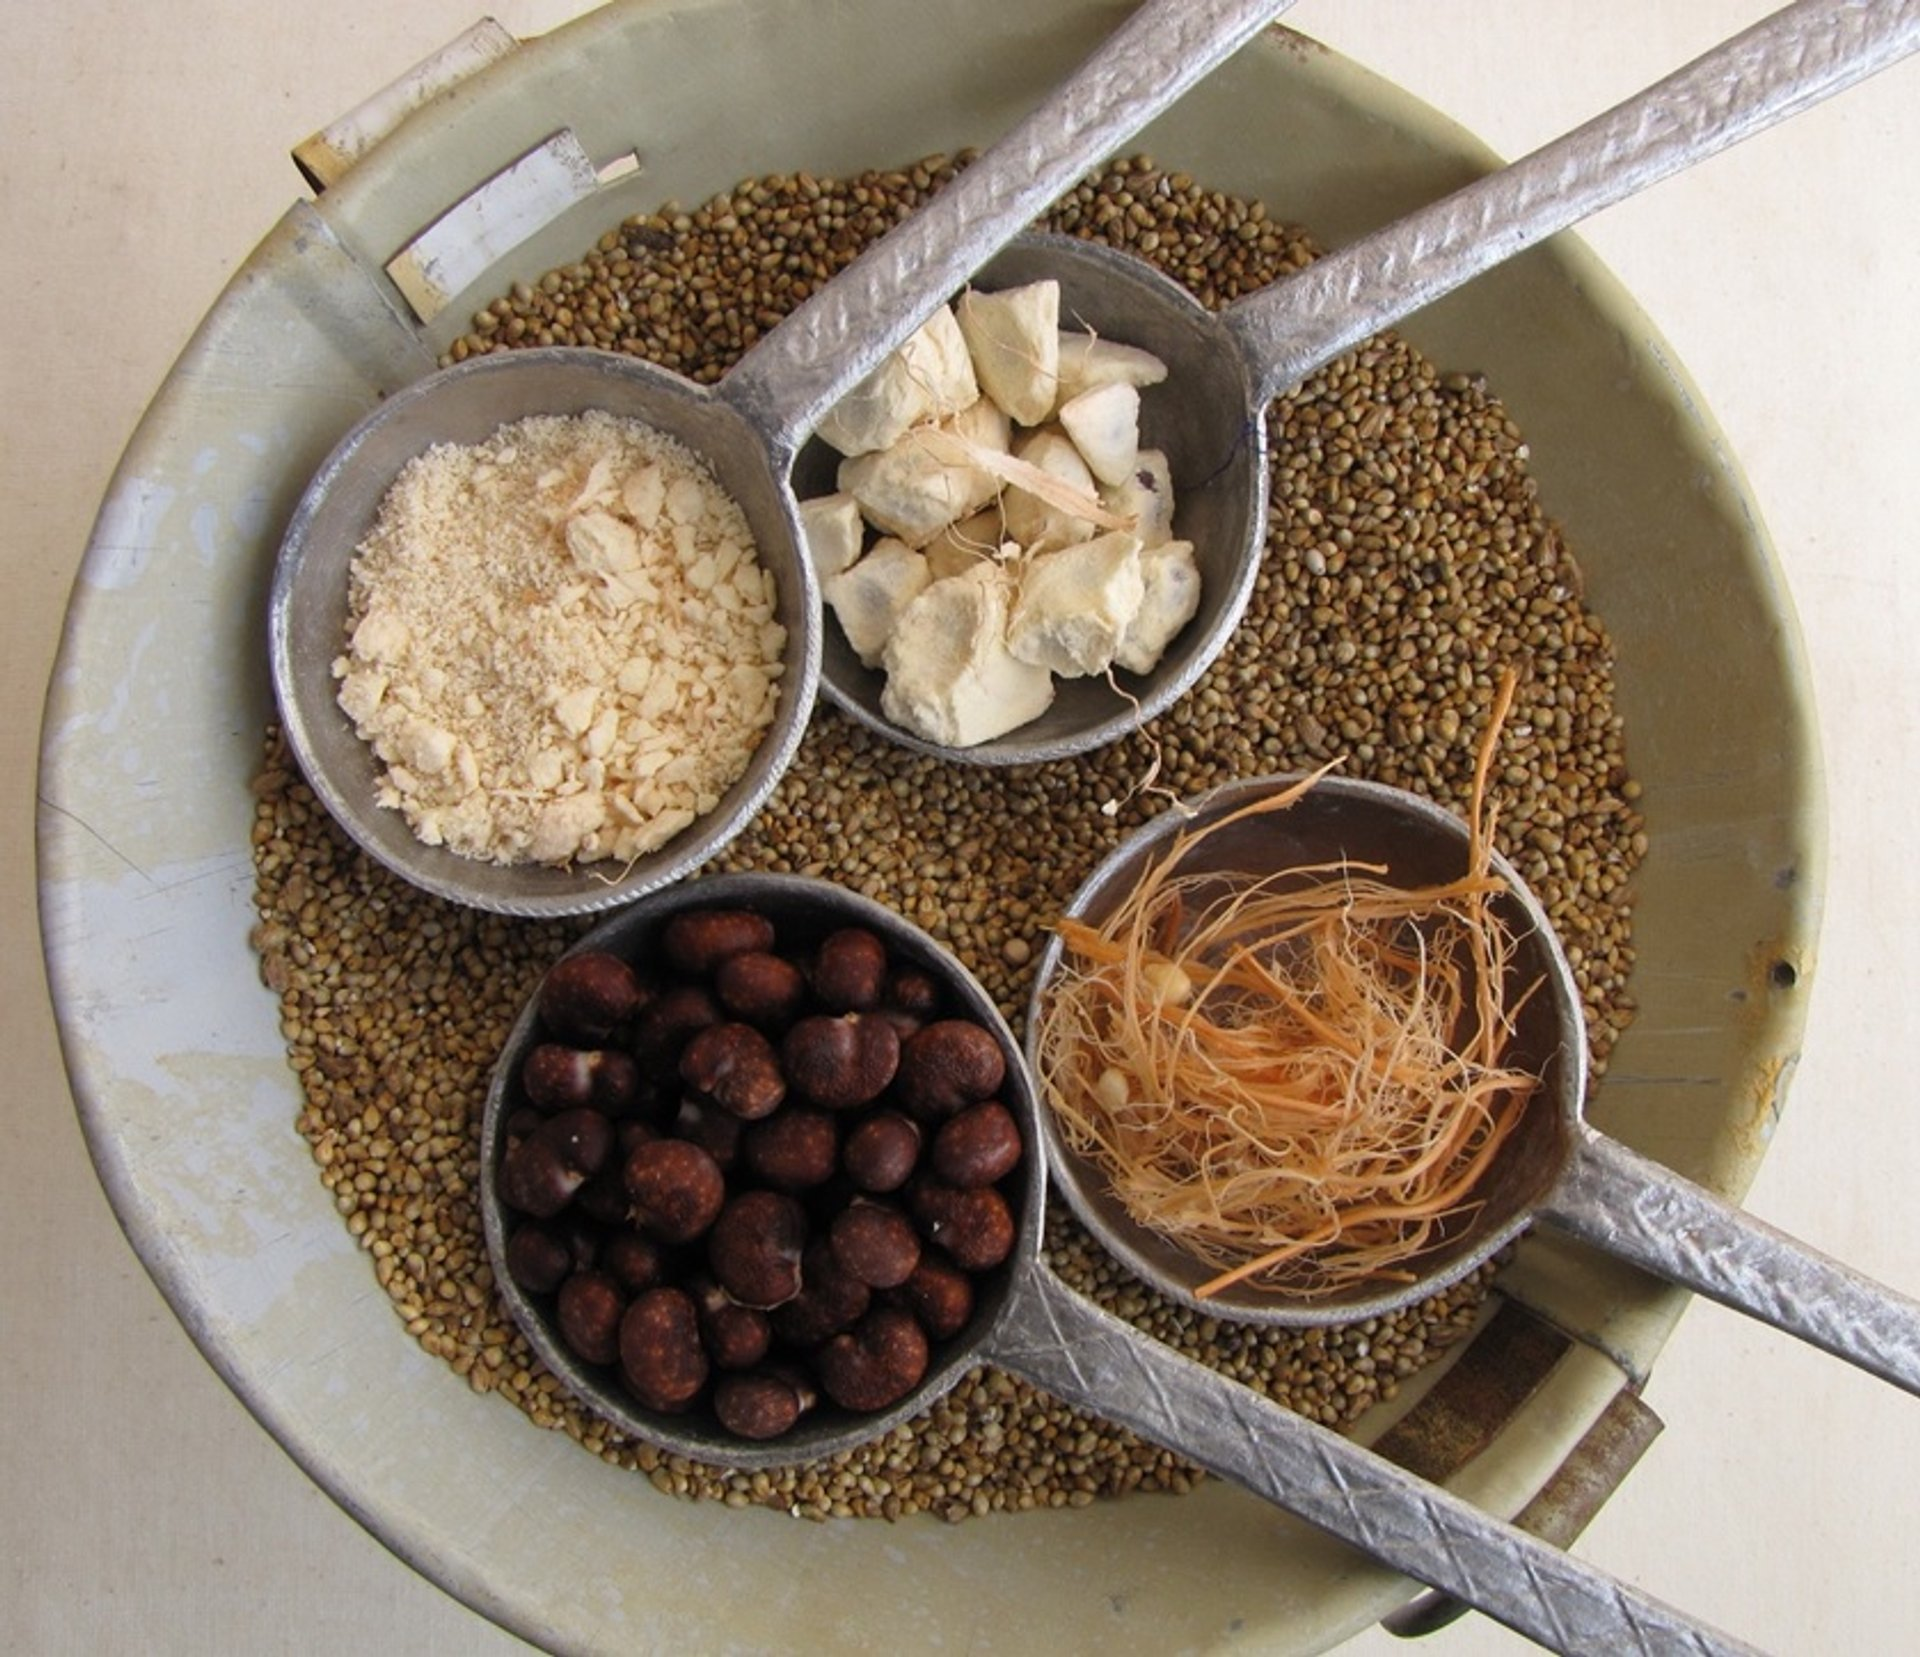 The dry, mature baobab fruit pulp chunks are shown compared to the three elements that comprise it: a white, opaque powdery edible pulp separated from pinkish fibers and brown baobab seeds.  2019